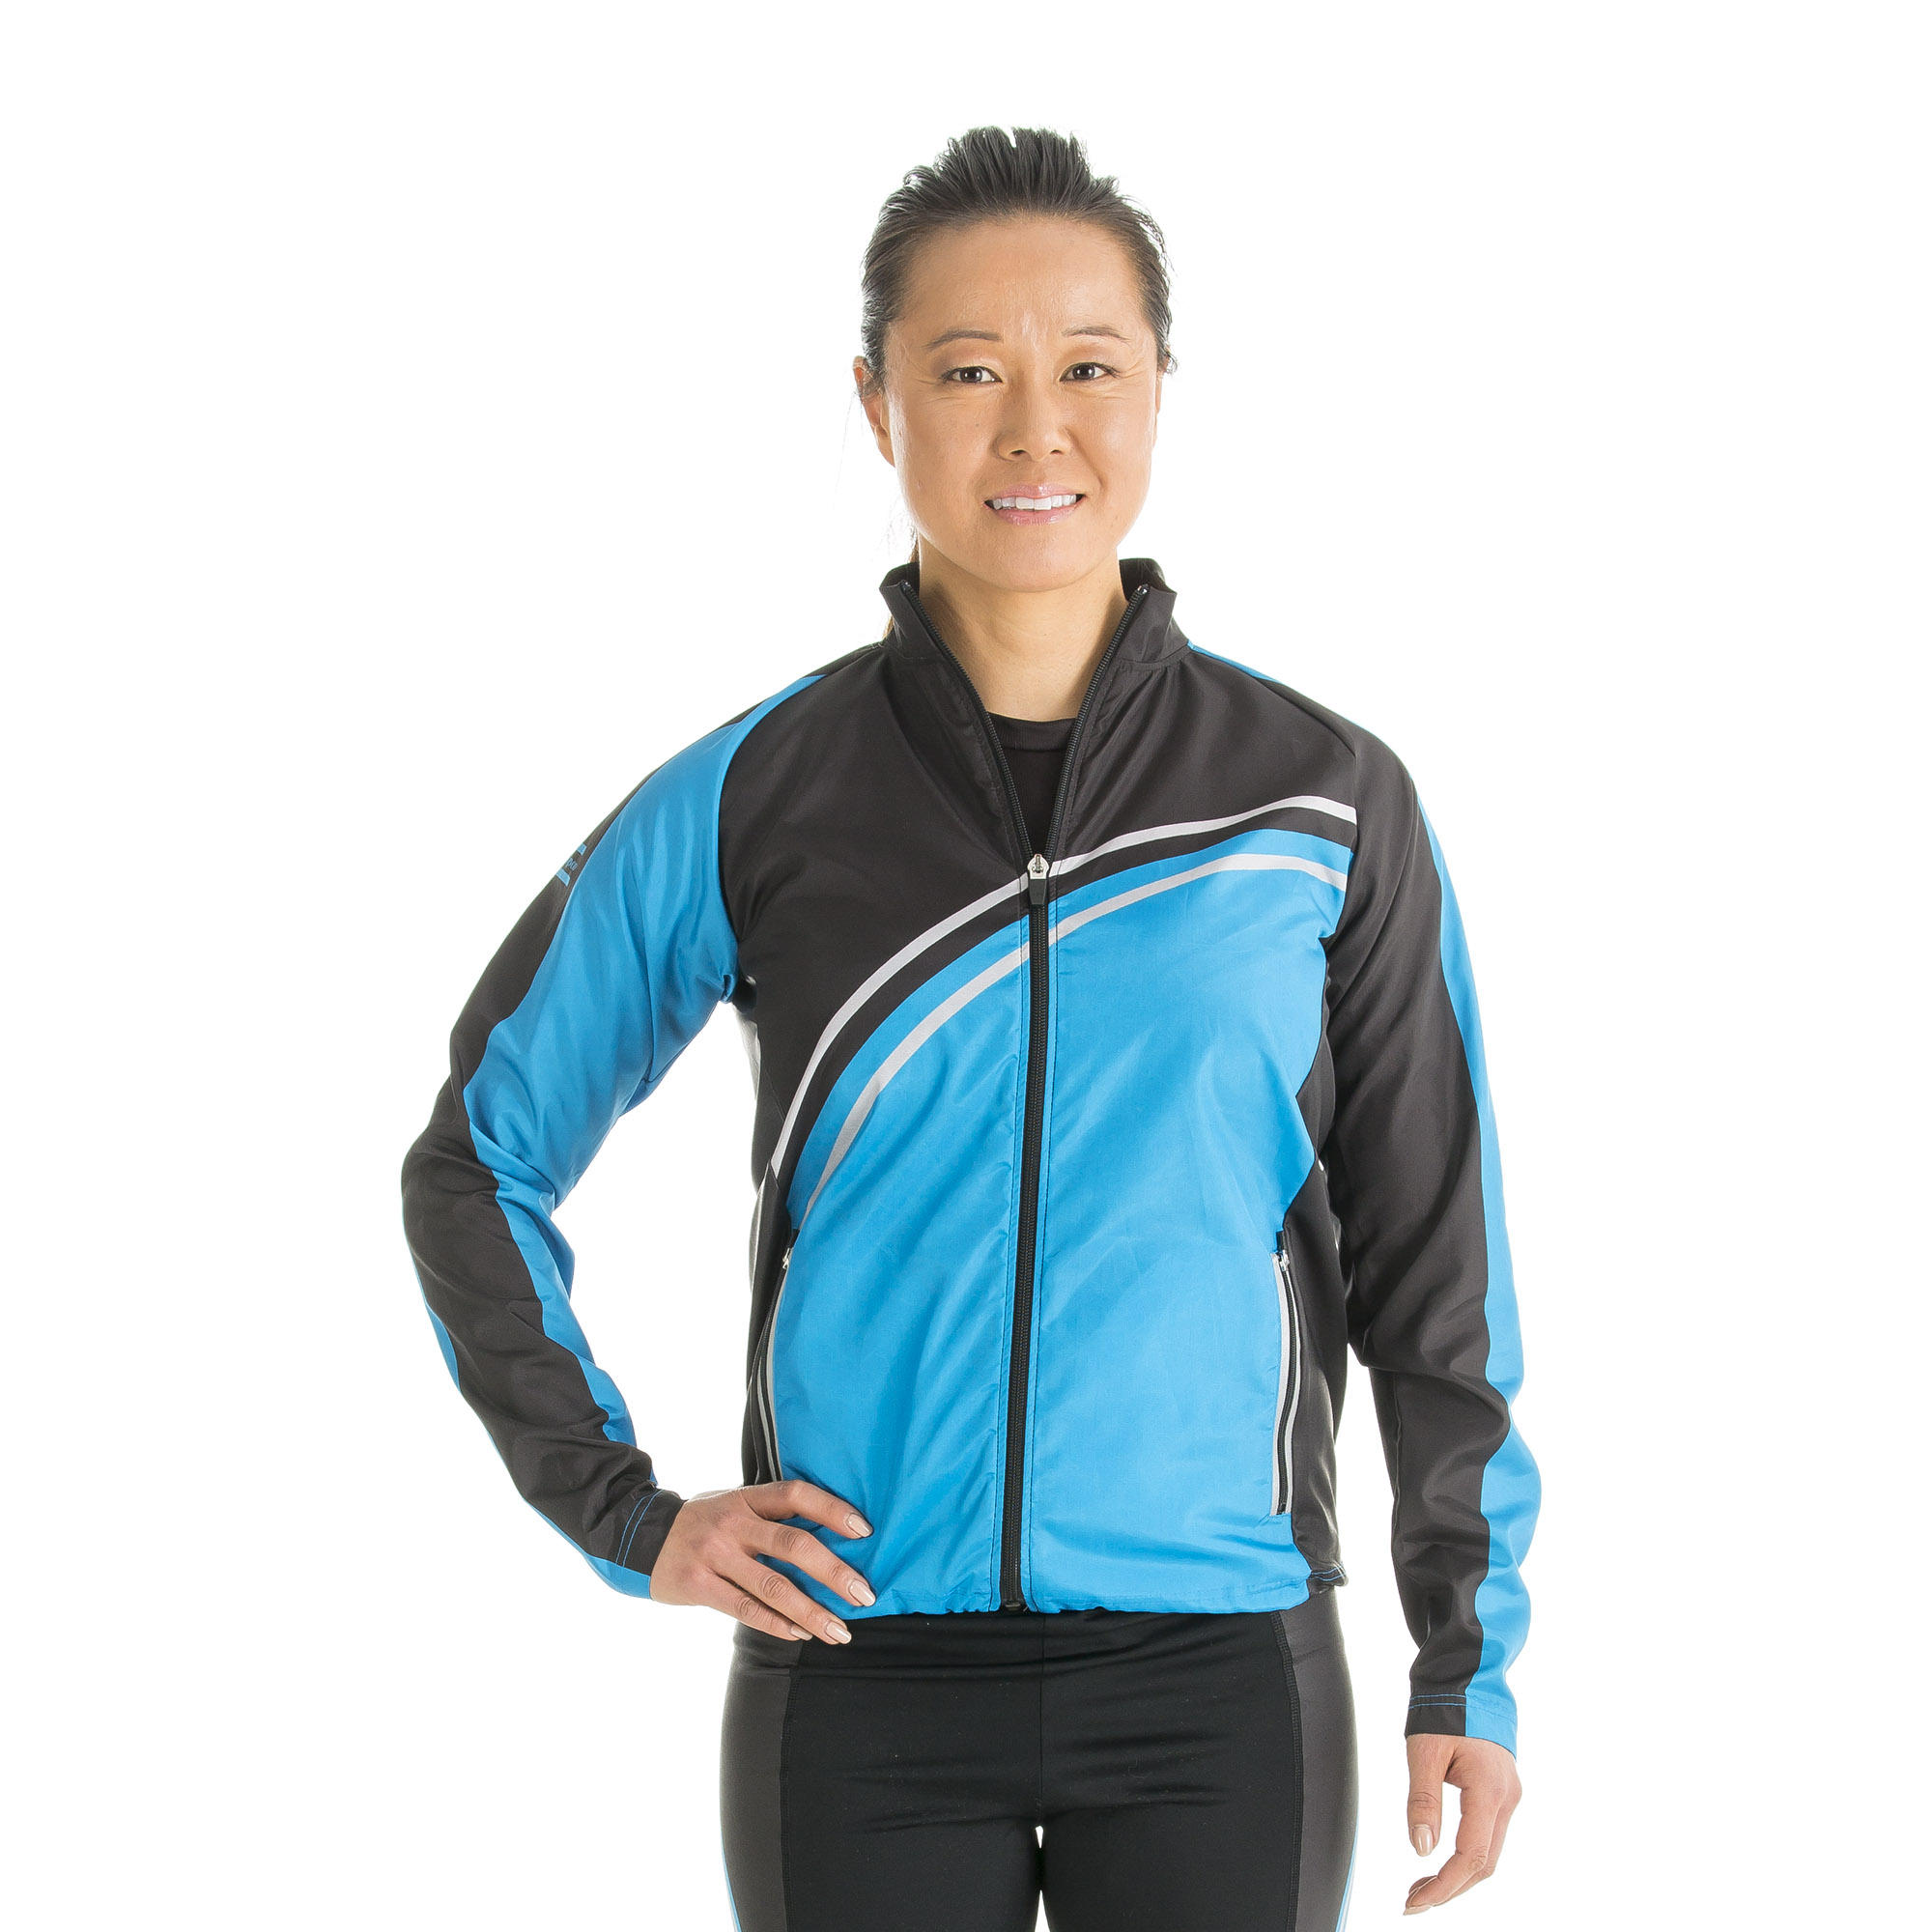 Wind-resistant jacket, with raglan sleeves, side panels, long zip and 2 zippered side pocket on front with integrated reflecting stripe, reflecting stripe centered in the lower back area, side insertions in elastic fabric for more freedom.